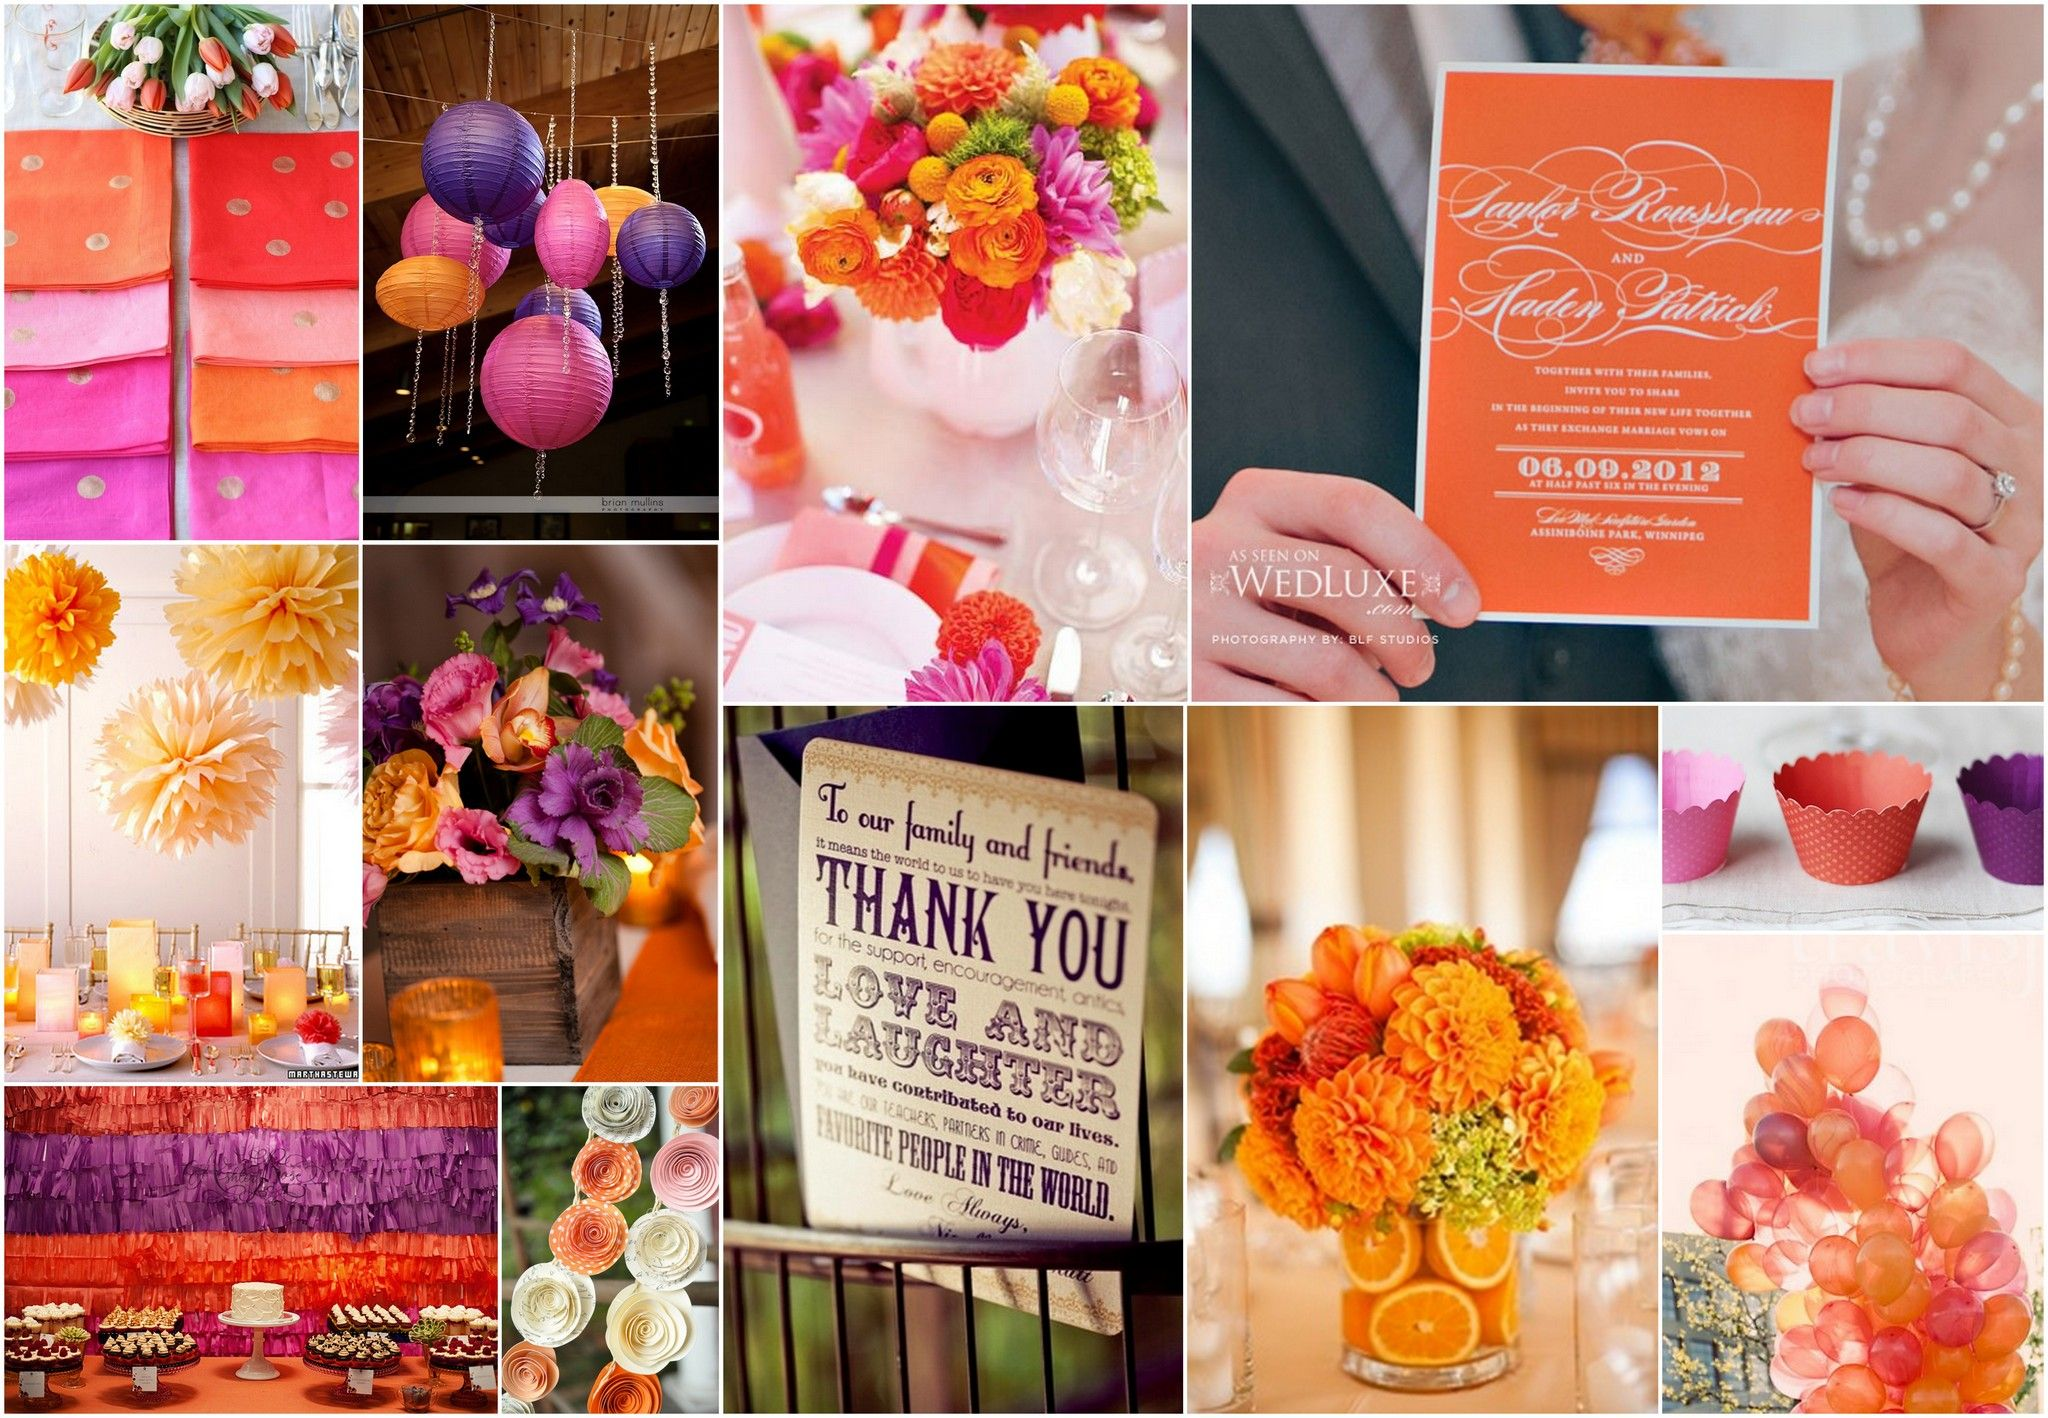 Pink Purple And Orange Wedding Decor Stationary Favors A Colorful Assortment Of Ideas Fo Orange And Pink Wedding Orange Wedding Themes Pink Wedding Theme